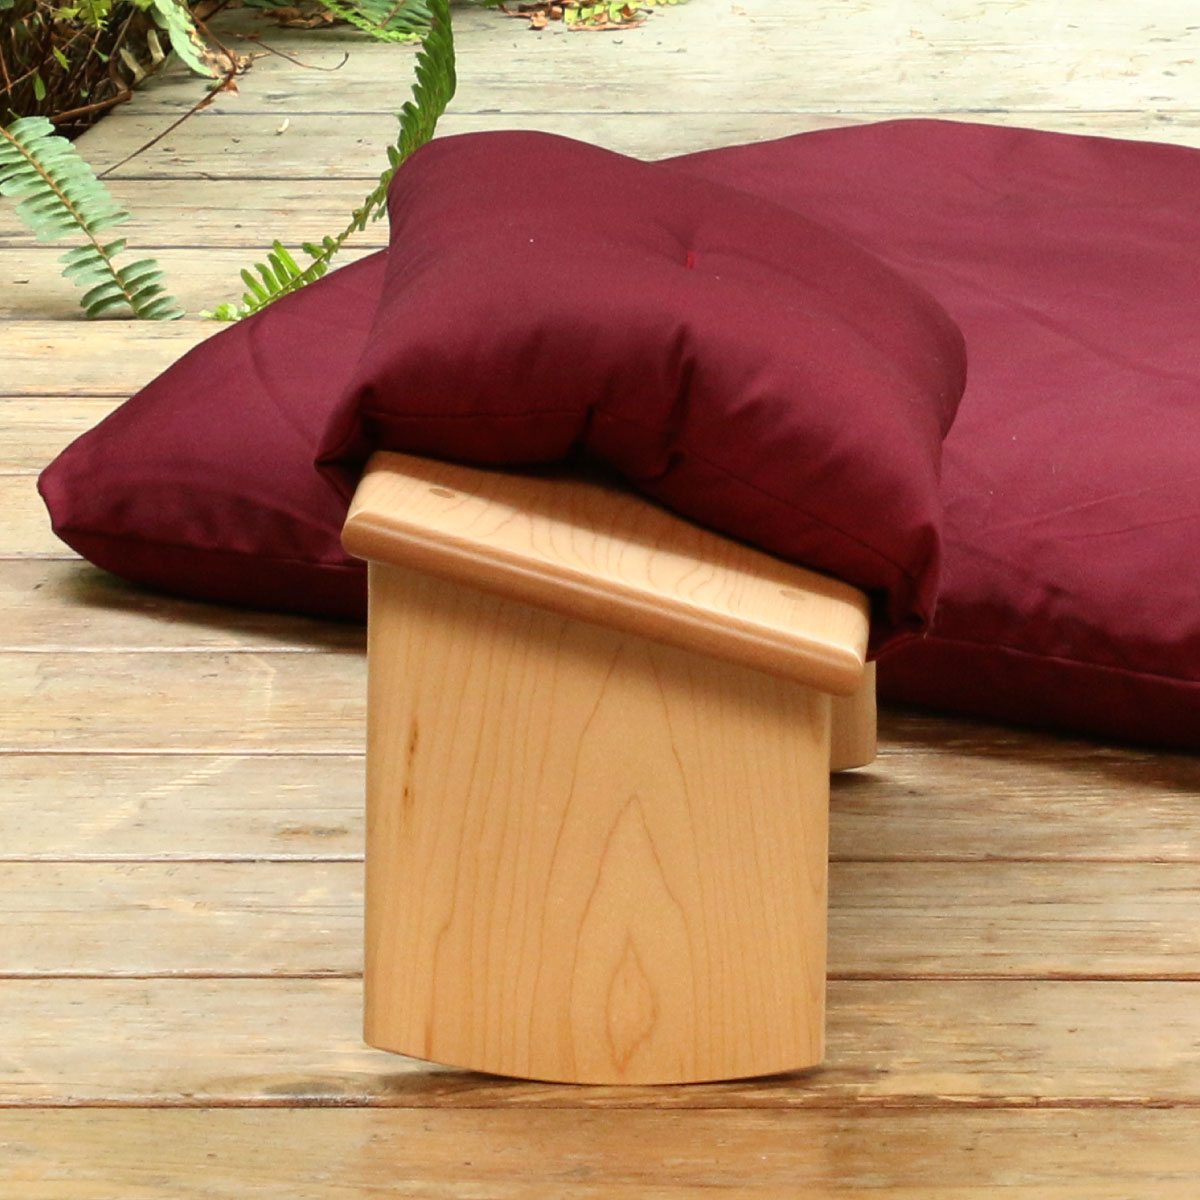 Choose an Curved Seiza Bench Set in Maple with a Burgundy Seiza Cushion and Zabuton Mat